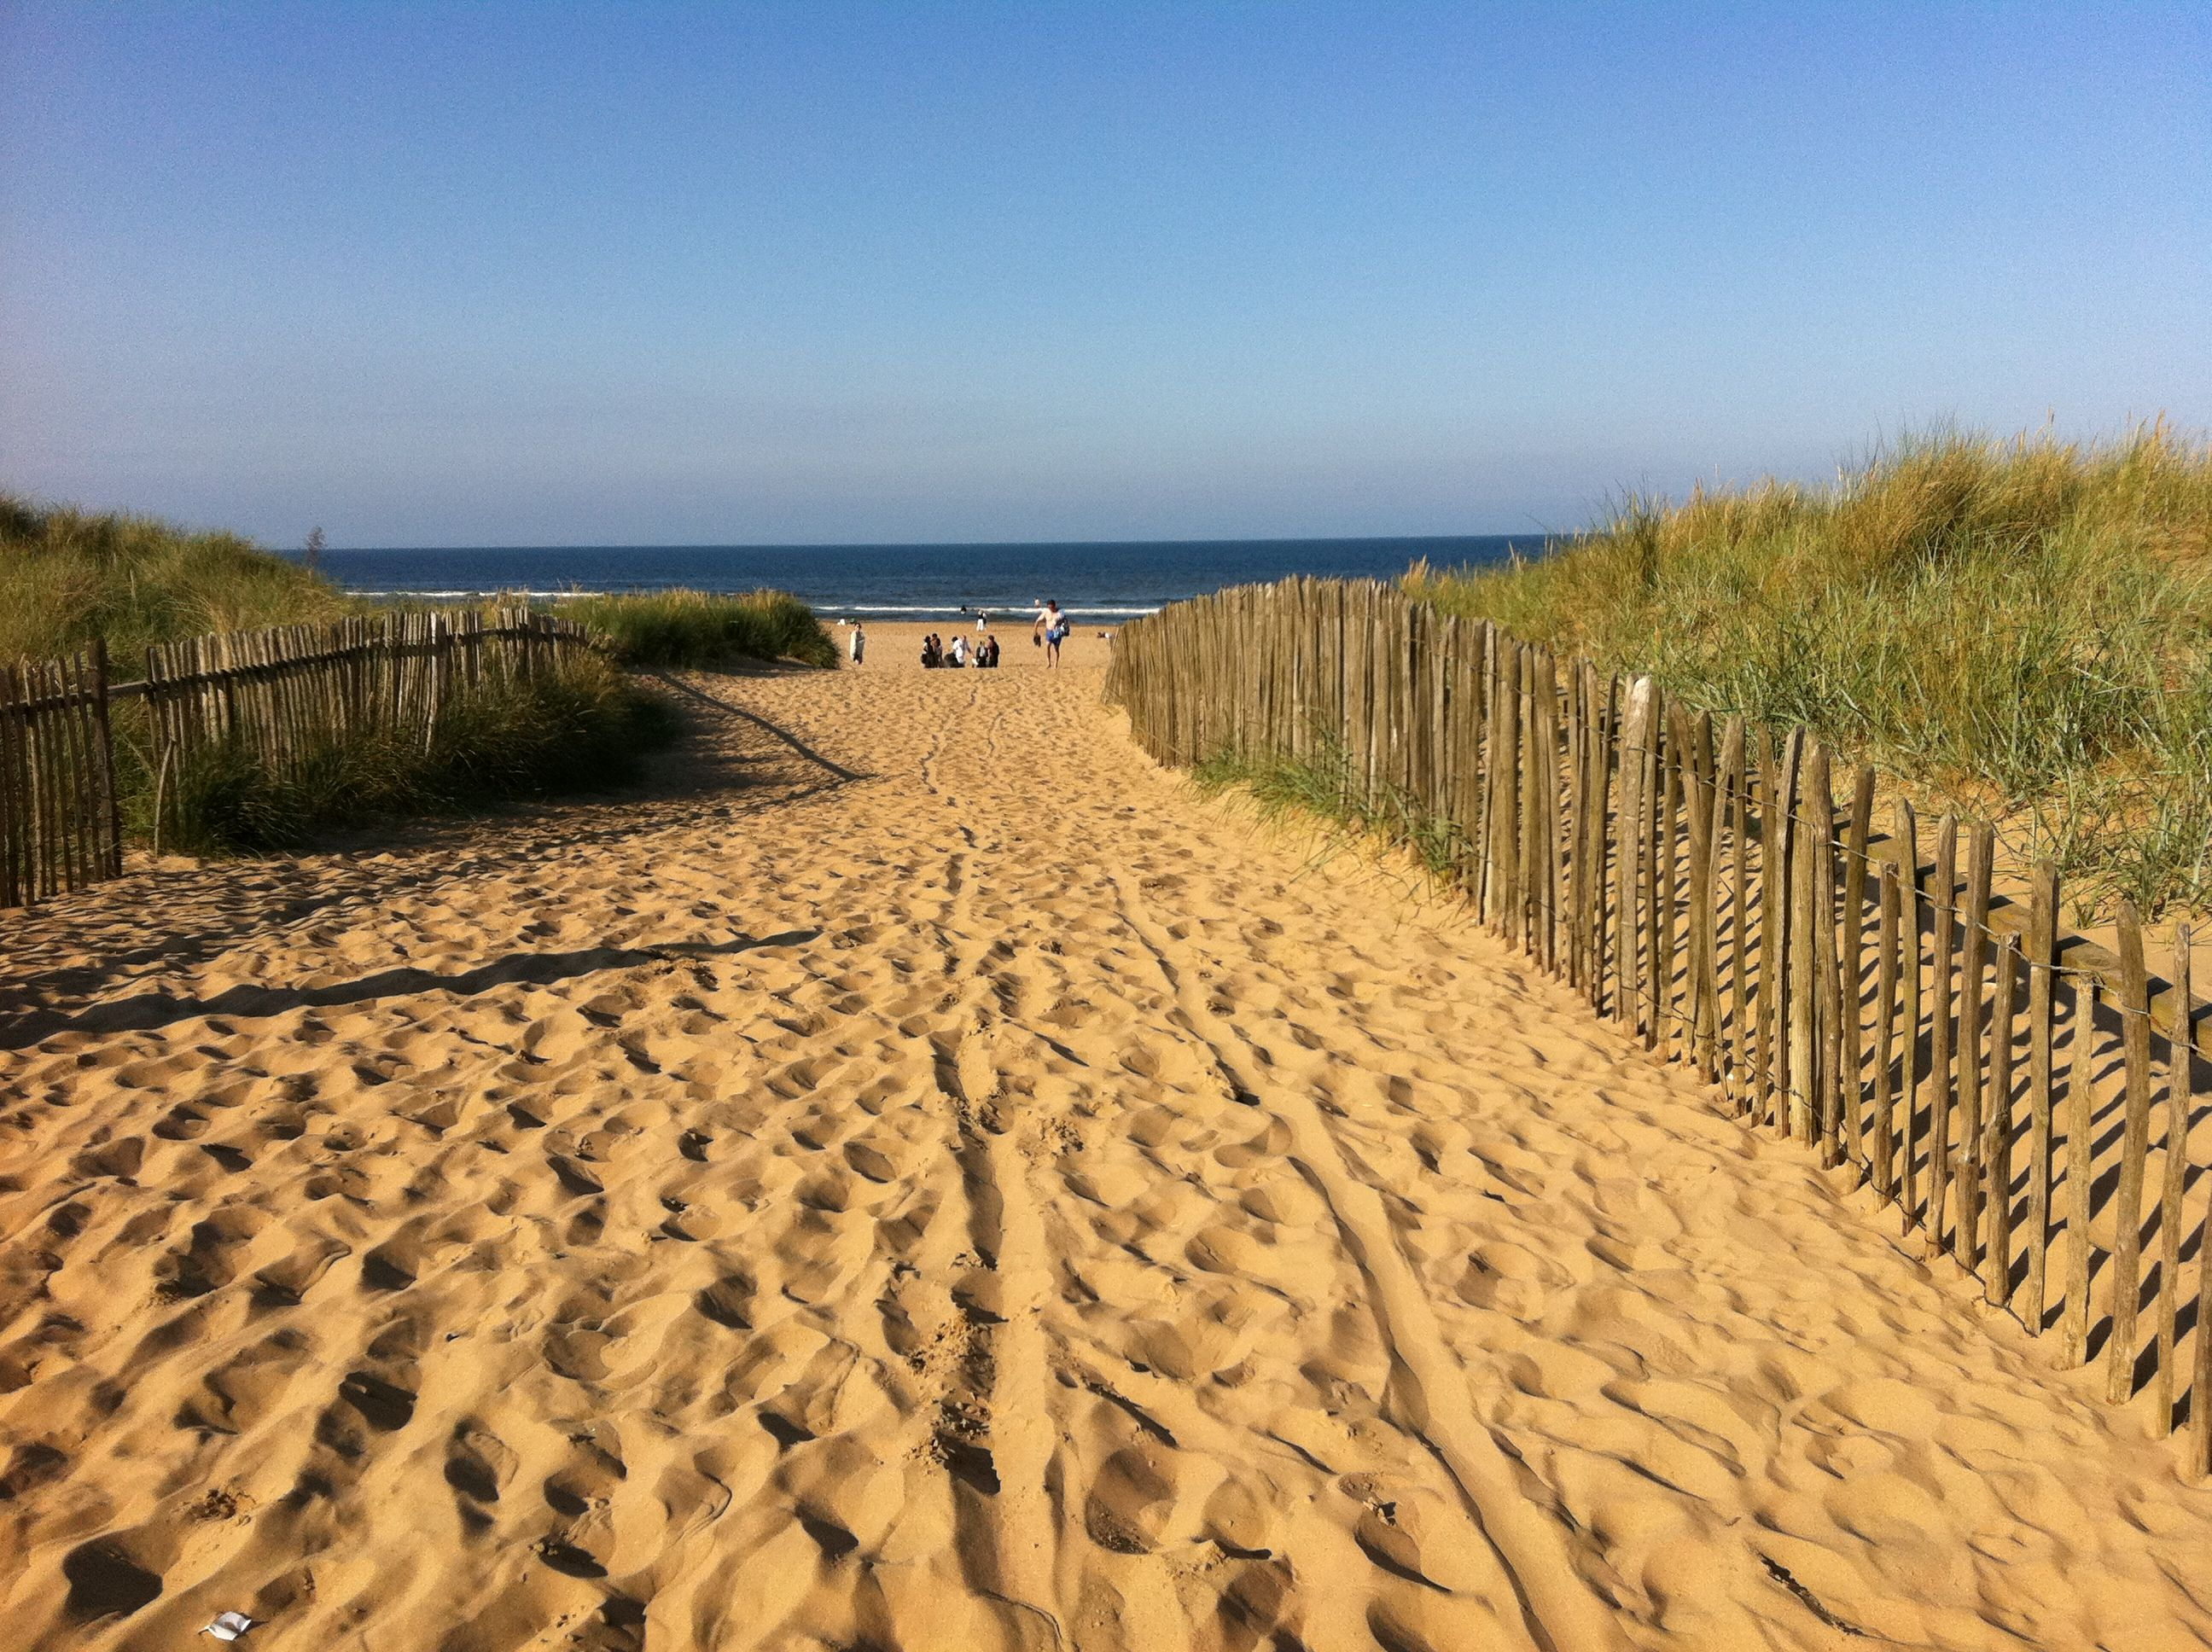 beach haven personals Find beach haven west nj beach haven west new jersey obituaries serve as a notice to the public and personals, beach haven west nj obituaries are taken.